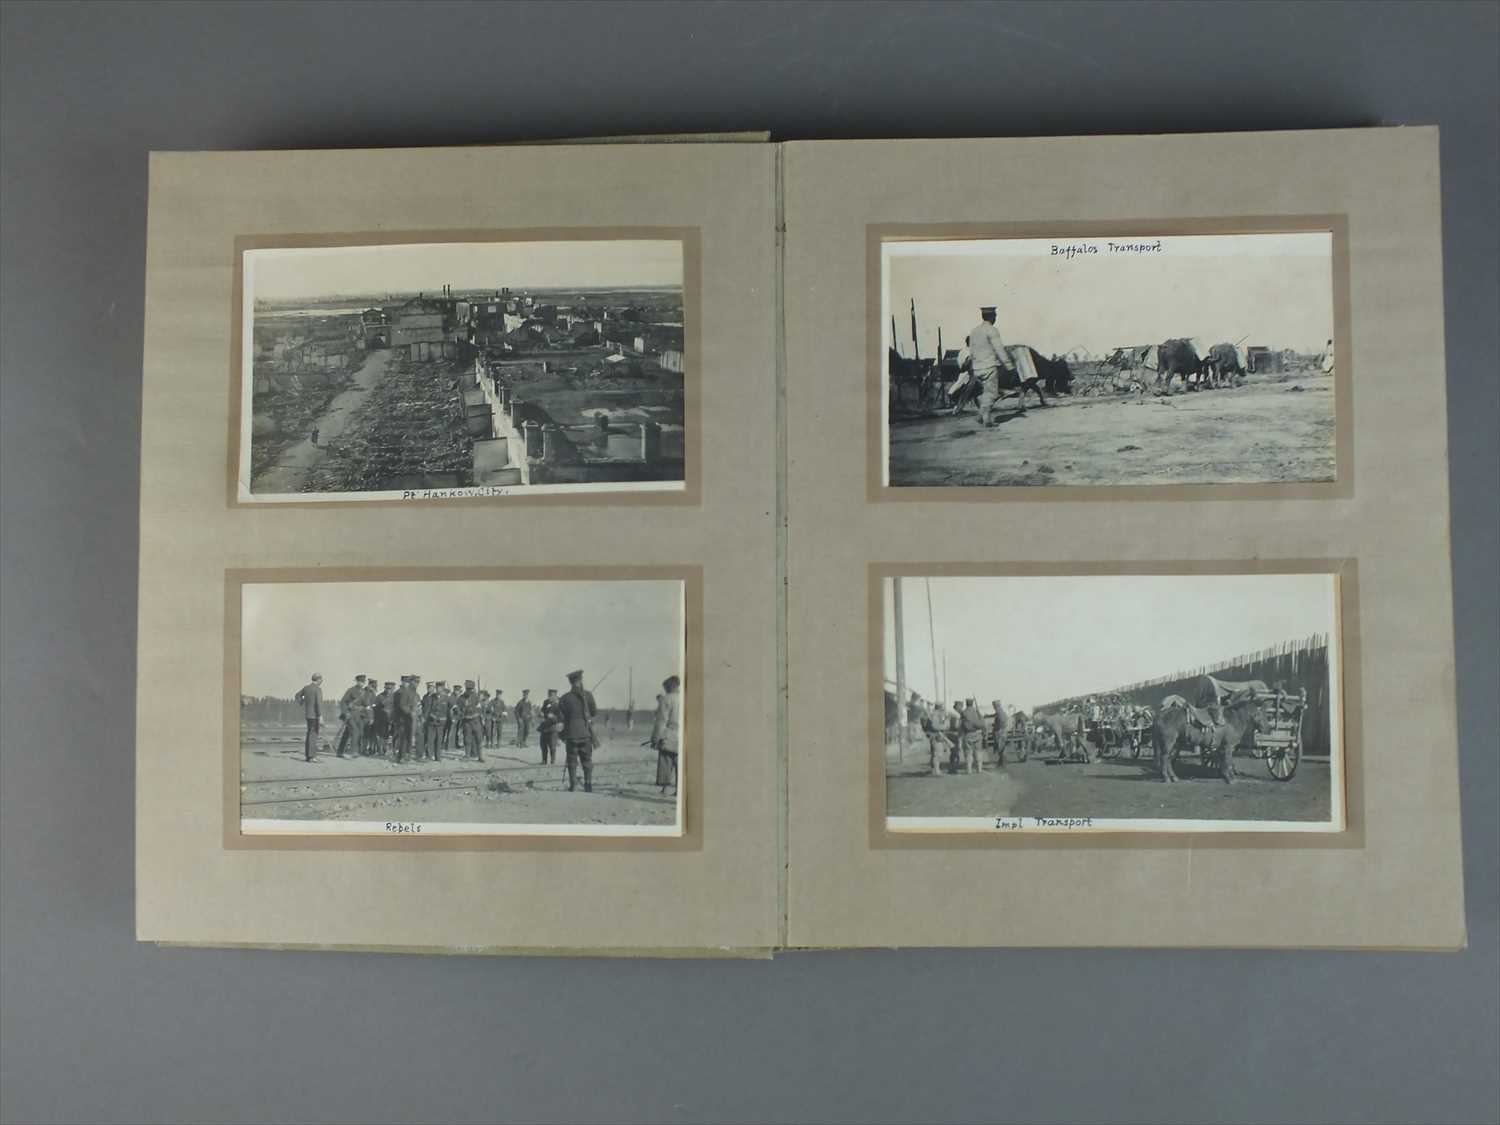 603 - Album of photographs taken during the Revolutionary Period in China